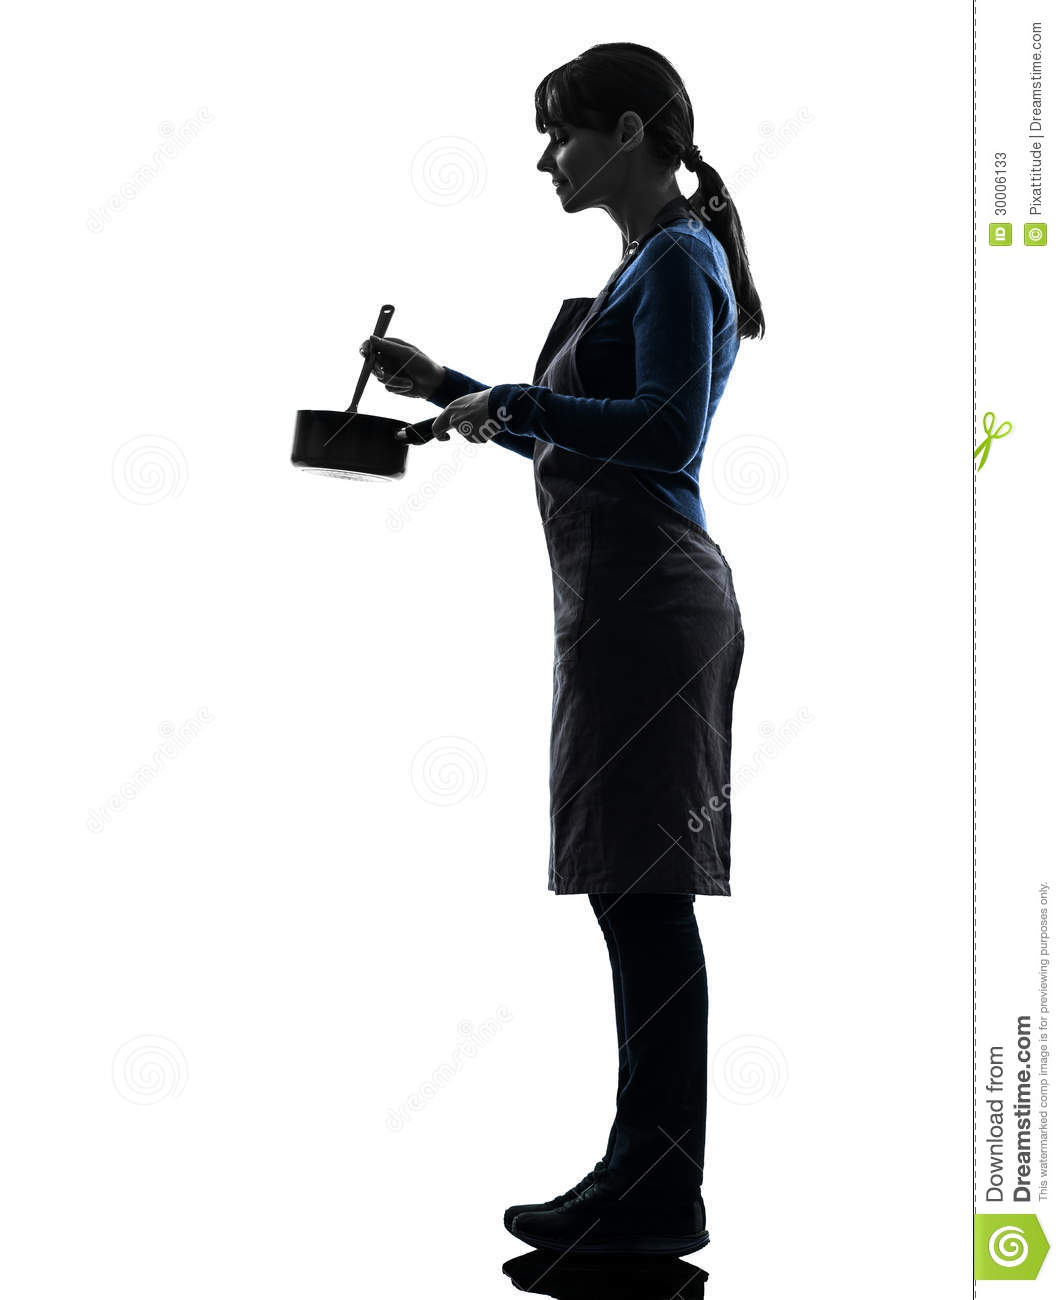 Woman Cooking Mixing Saucepan Silhouette Stock Image ...